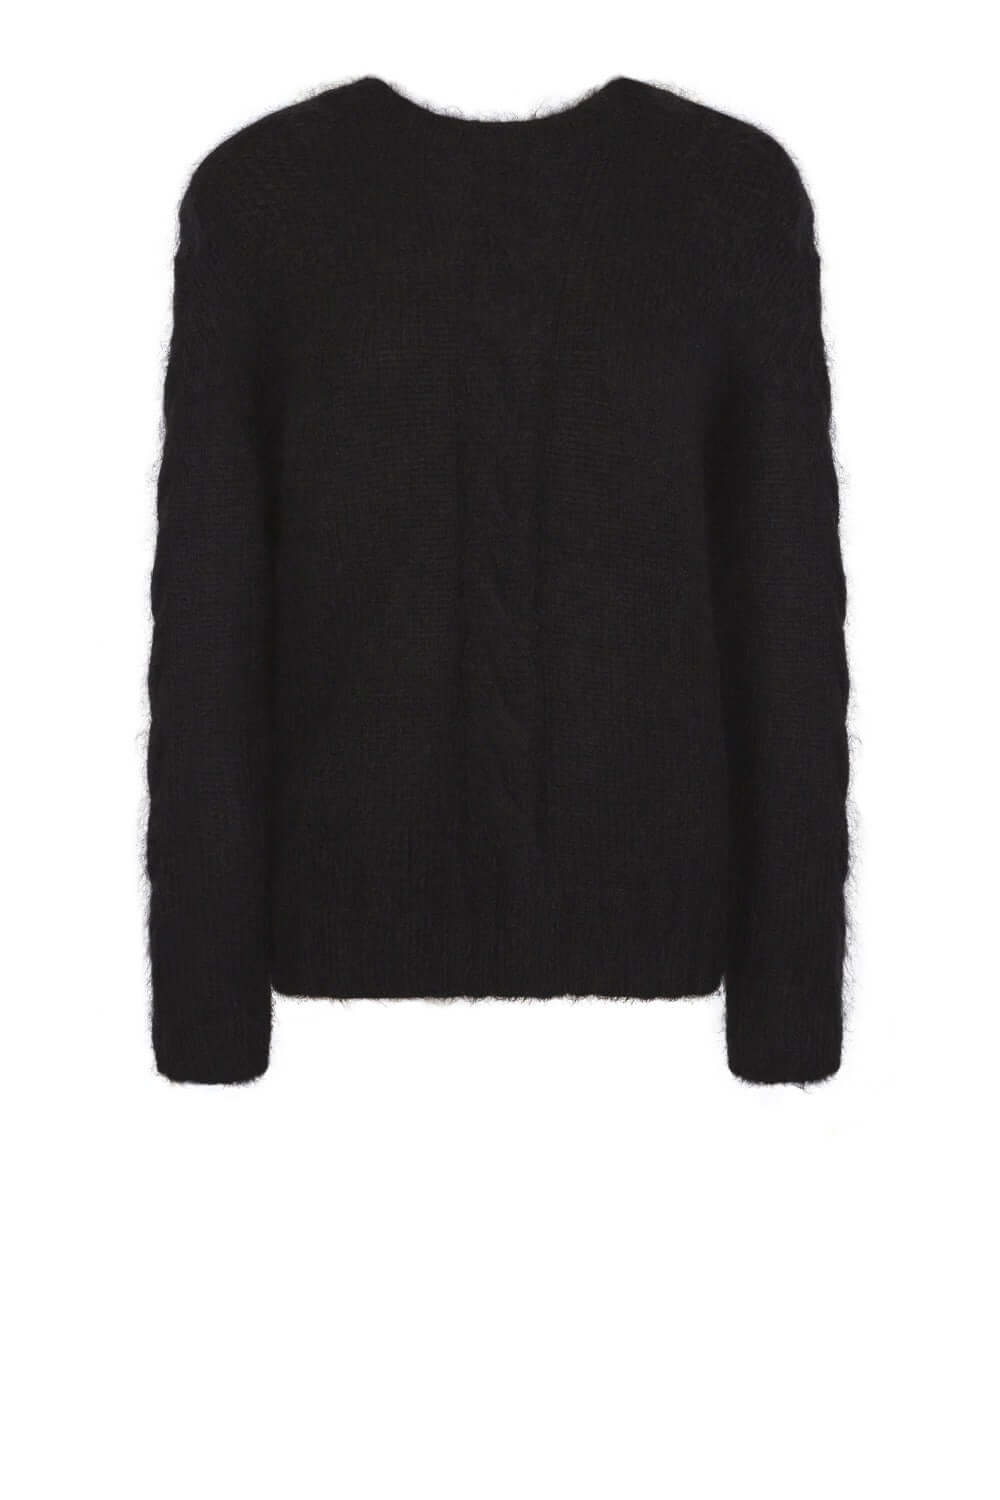 Ellis sweater in black knit